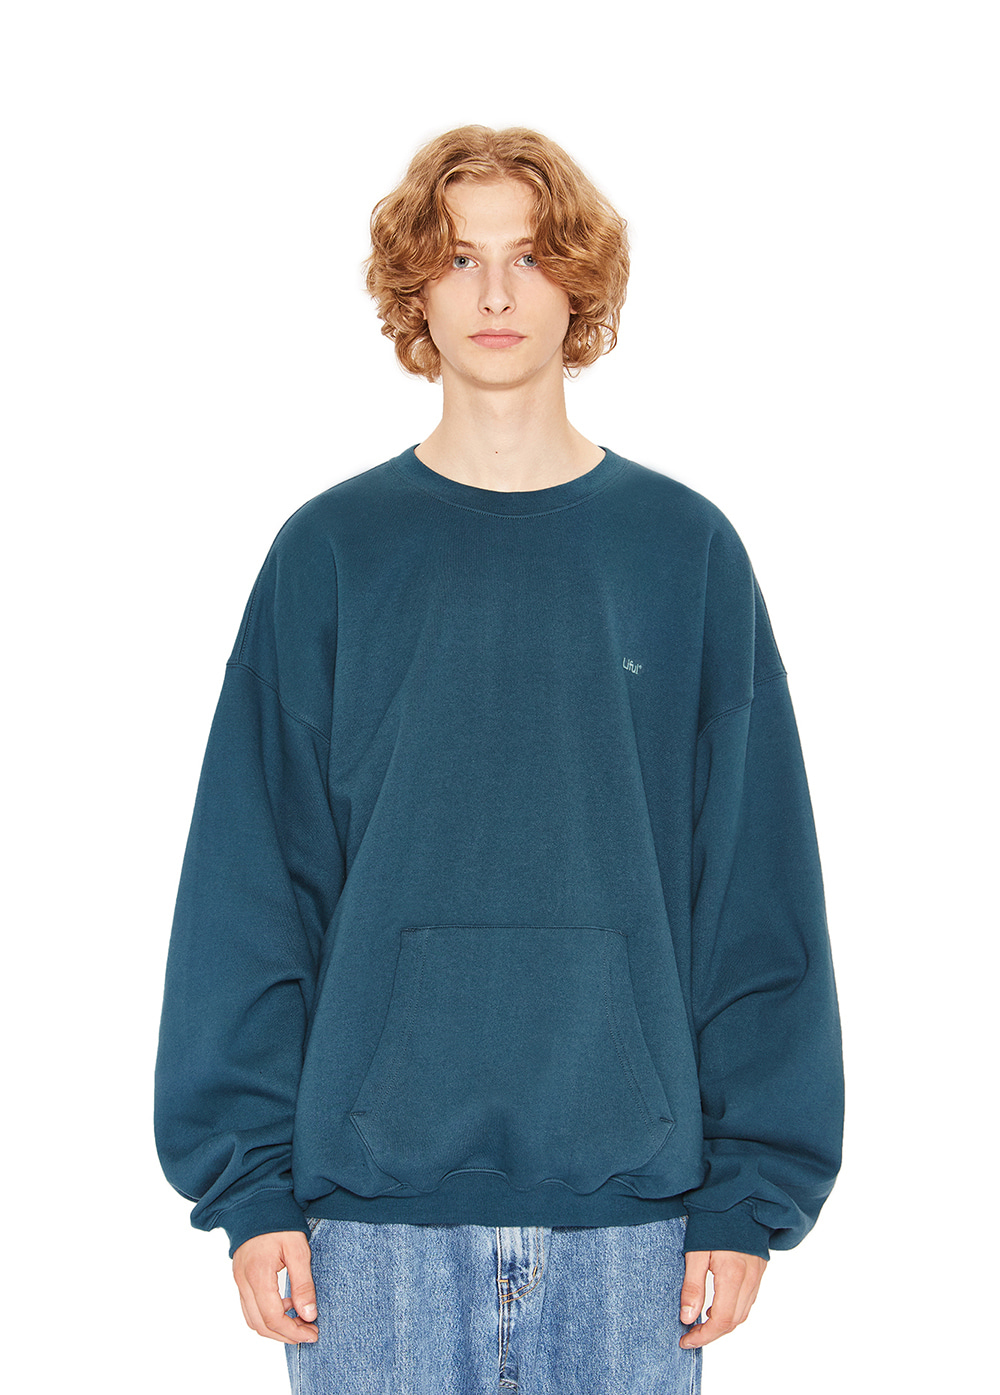 LIFUL LOGO POCKET SWEATSHIRT teal green